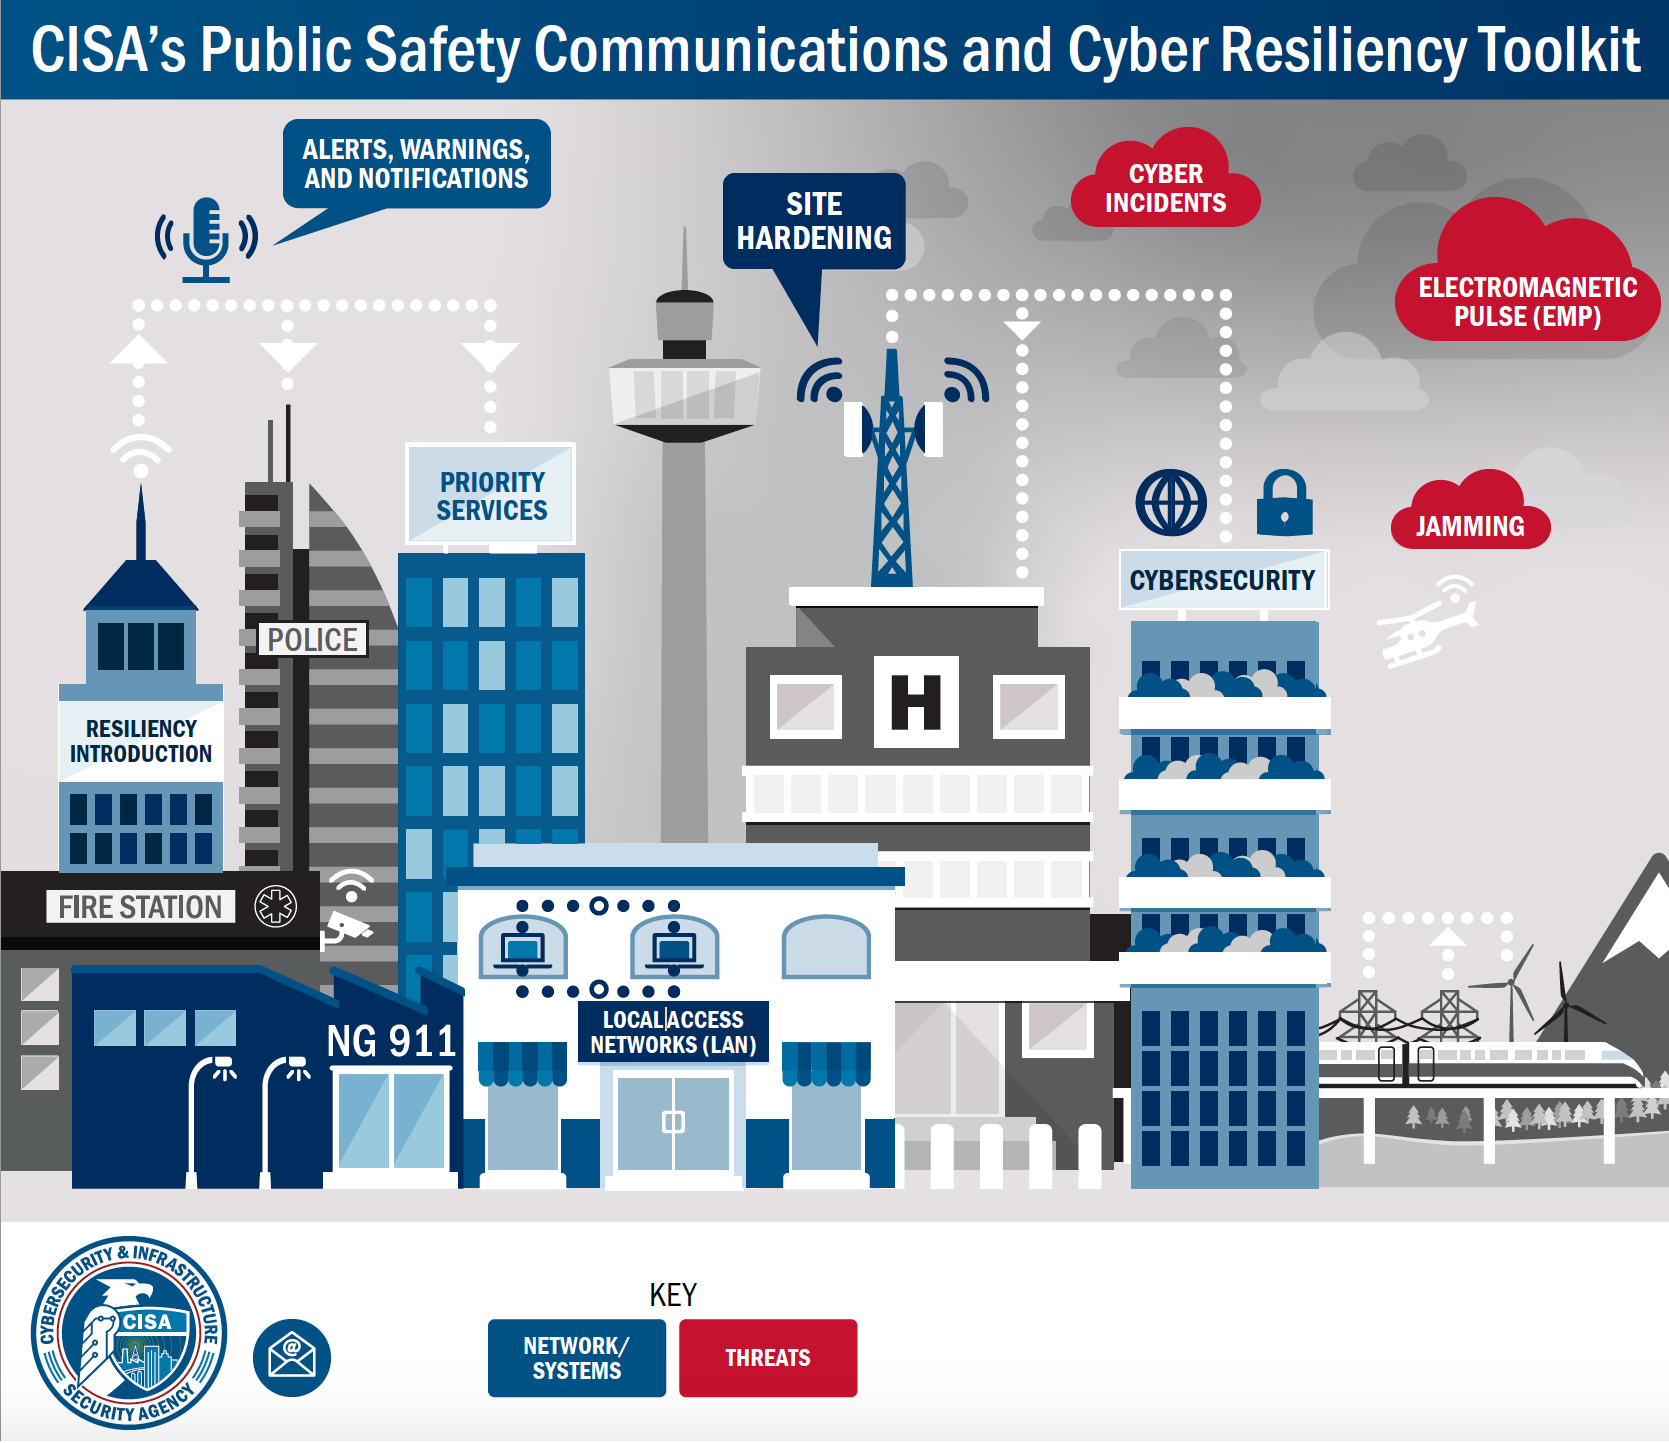 Public Safety Communications and Cyber Resiliency Toolkit